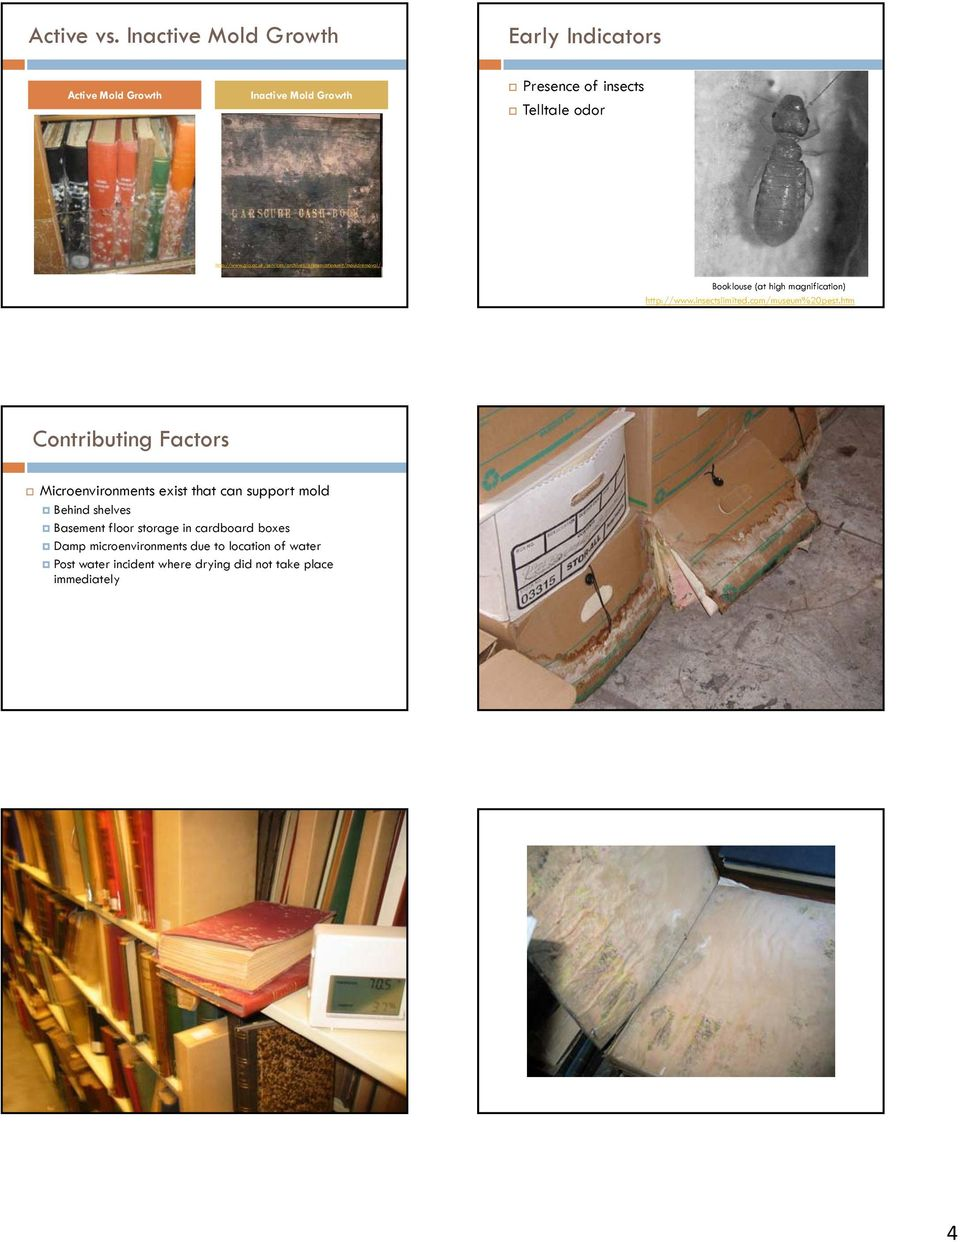 ac.uk/services/archives/preservationunit/mouldremoval/ Booklouse (at high magnification) http://www.insectslimited.